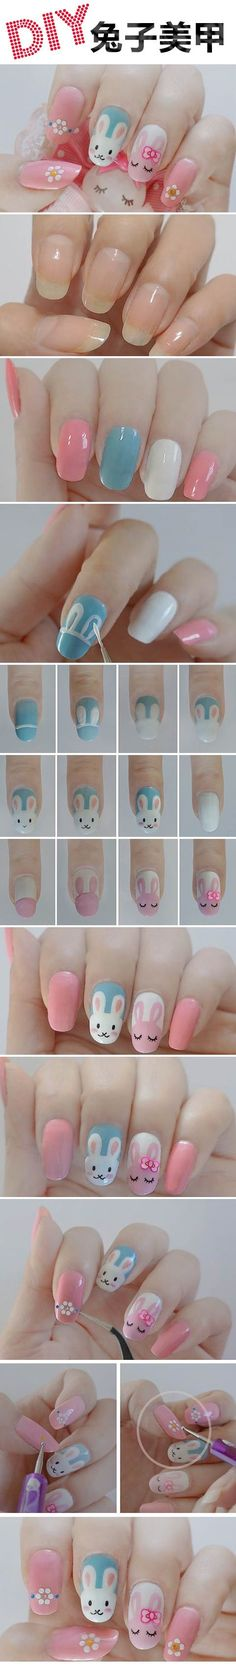 MendaBeauty wants to see everyone with cute nails this spring! Try this easy step-by-step DIY nail art tutorial featuring bunny rabbits. Perfect for upcoming Easter or an adorable base design for baby-shower bunnies. Cute Nail Art, Nail Art Diy, Diy Nails, Cute Nails, Nail Nail, Nail Polishes, Trendy Nails, Diy Art, Diy Easter Nails